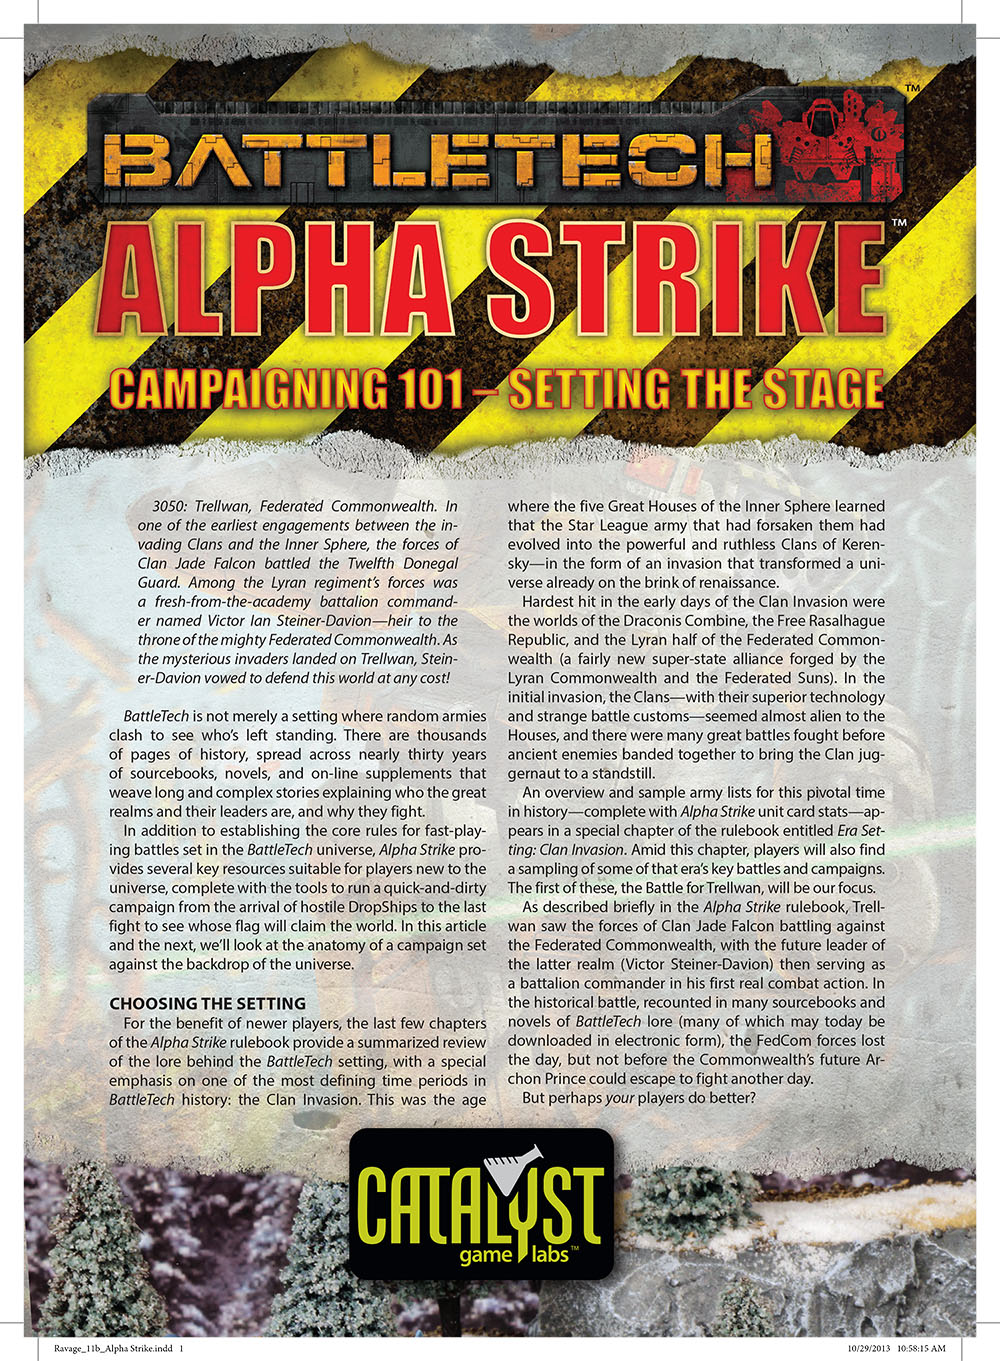 Ravage_11_Alpha StrikeArticle-Page1